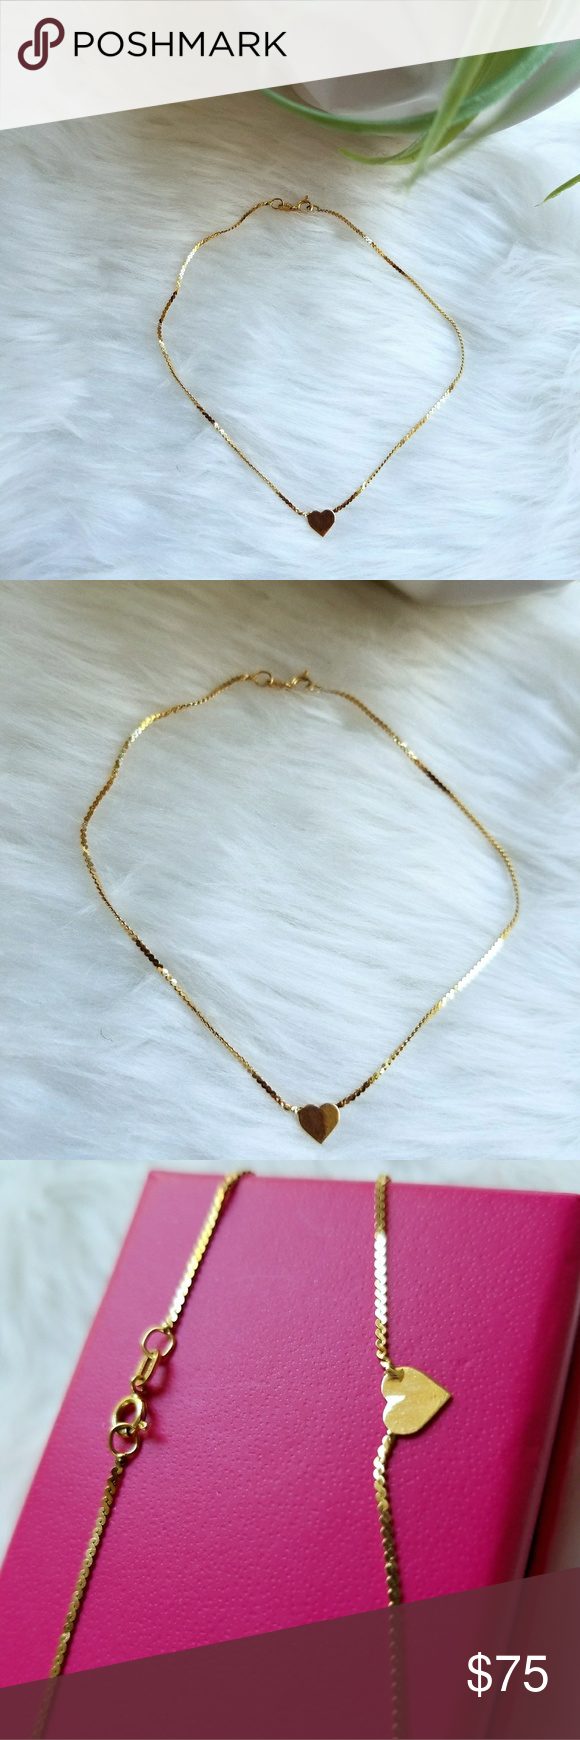 anklet heart yellow htm ankle bracelets product bracelet tiny gold p